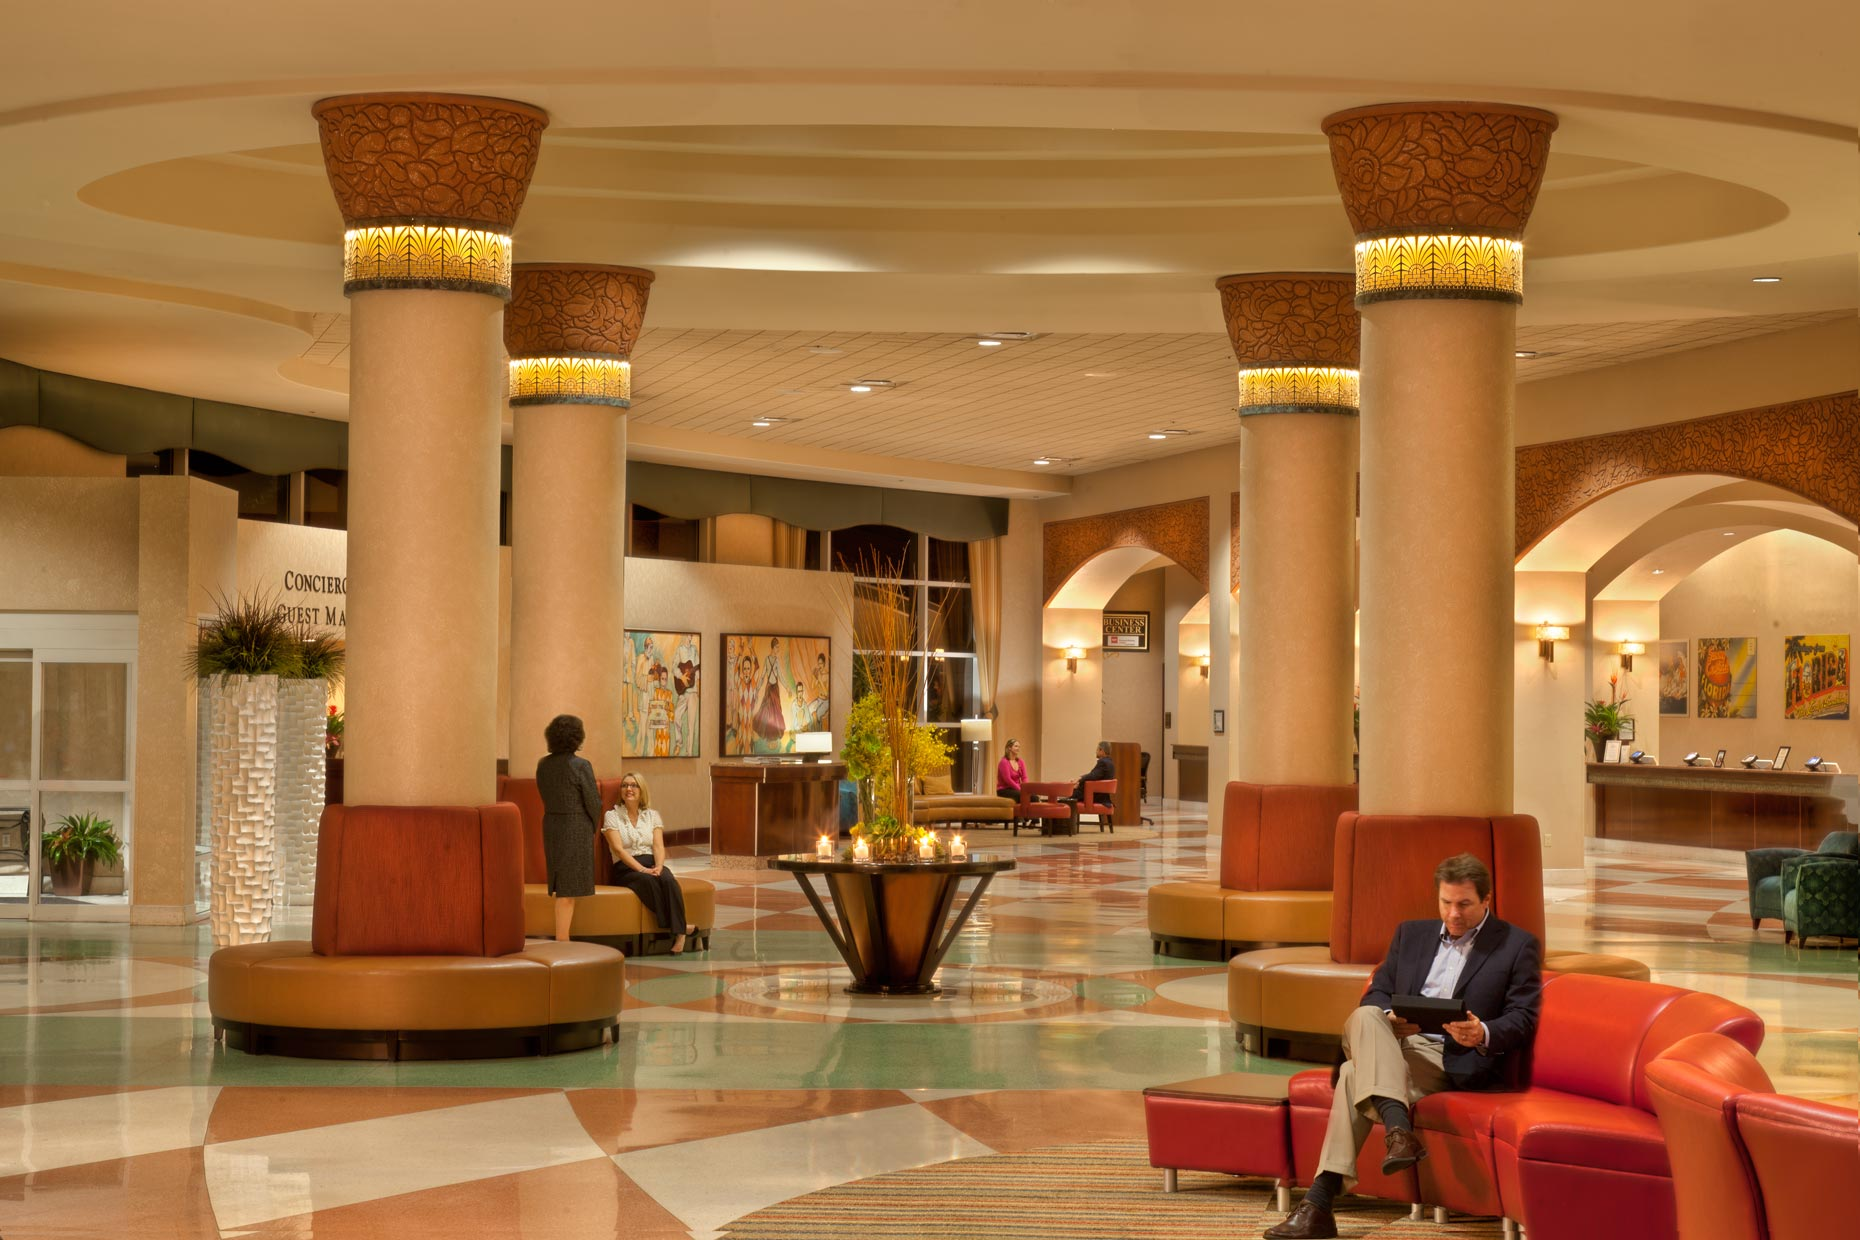 Hotel & Resort Photography | Rosen Center Hotel Lobby Orlando